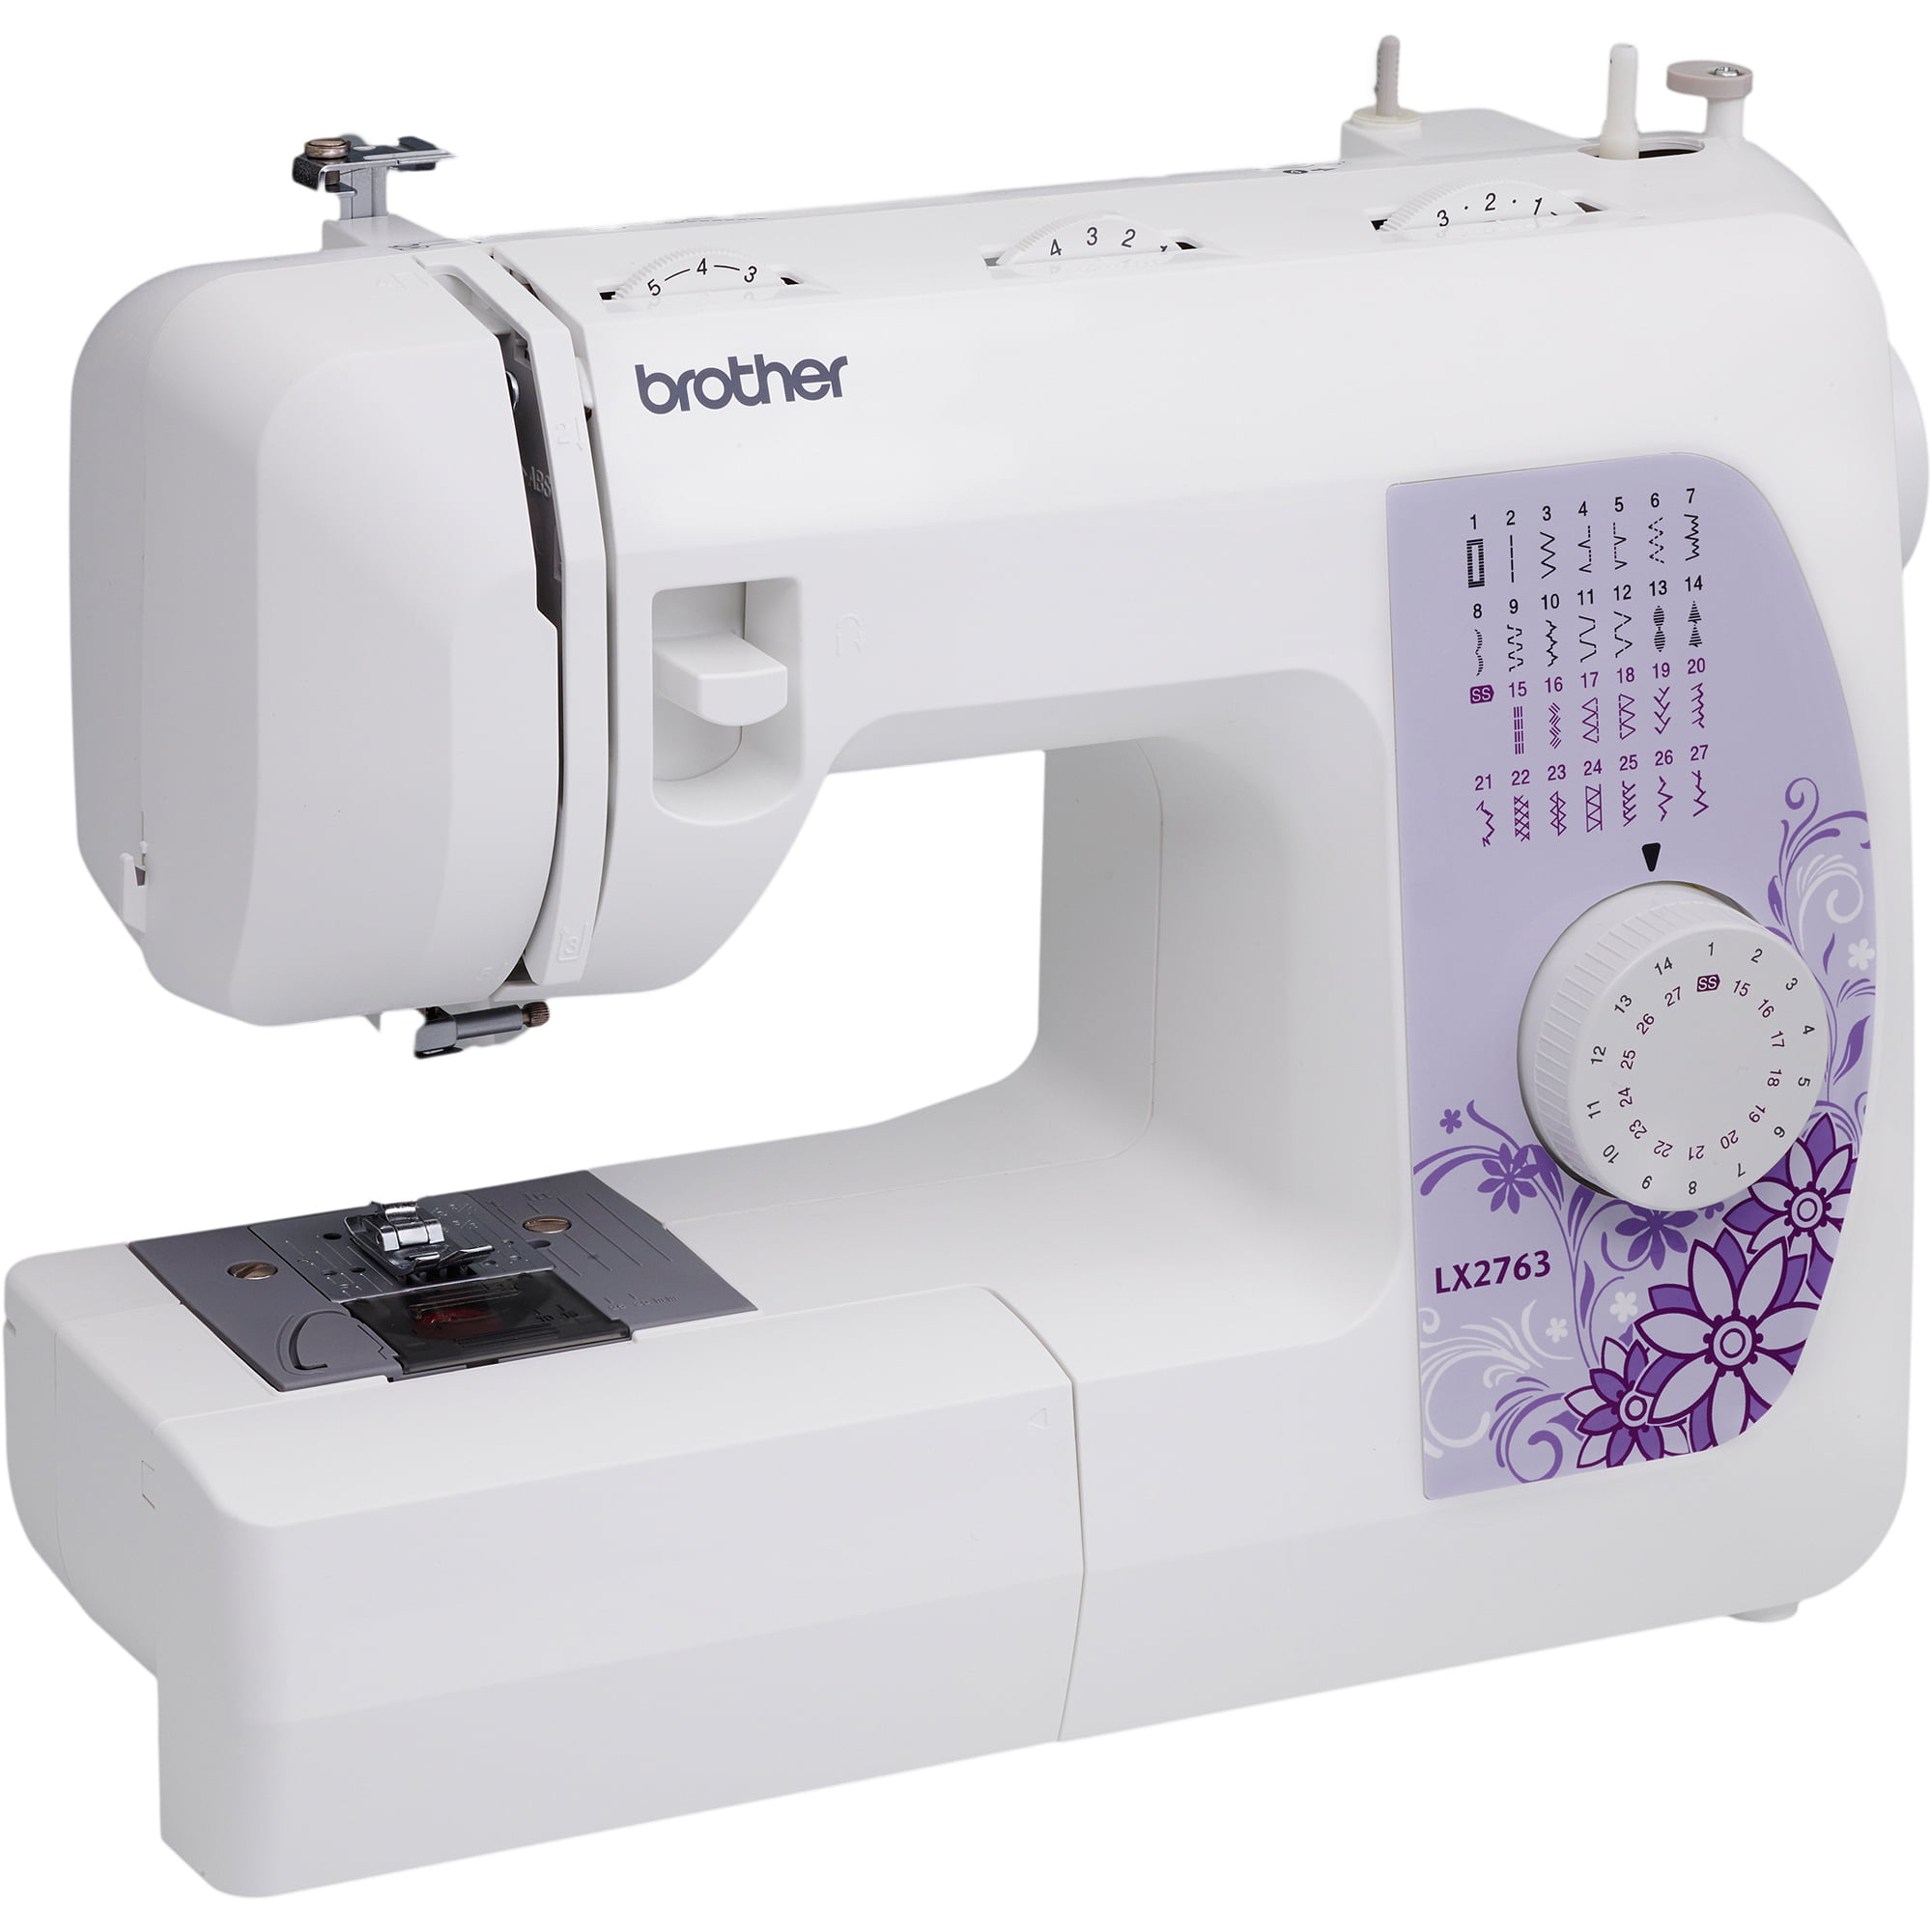 sewing machine stitches on bottom